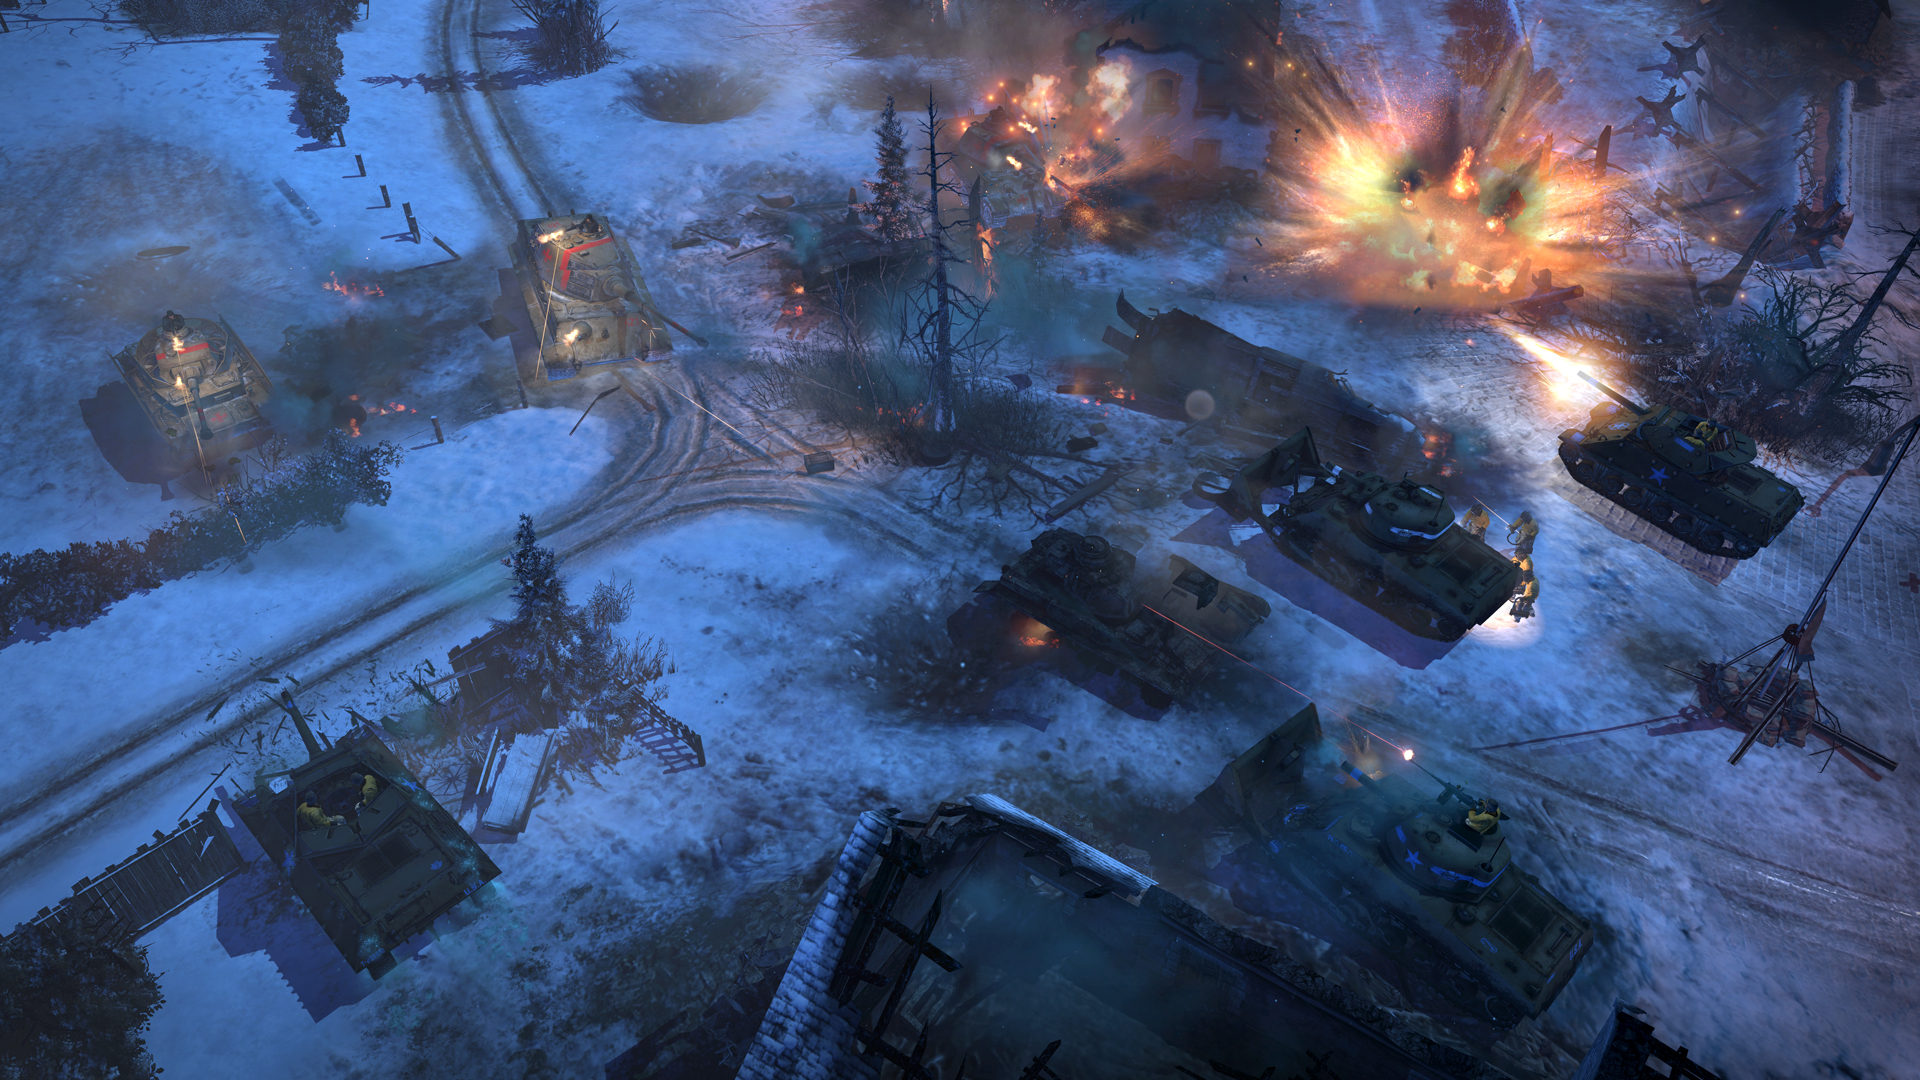 AA Screenshot 3 - Company of Heroes 2: Ardennes Assault image